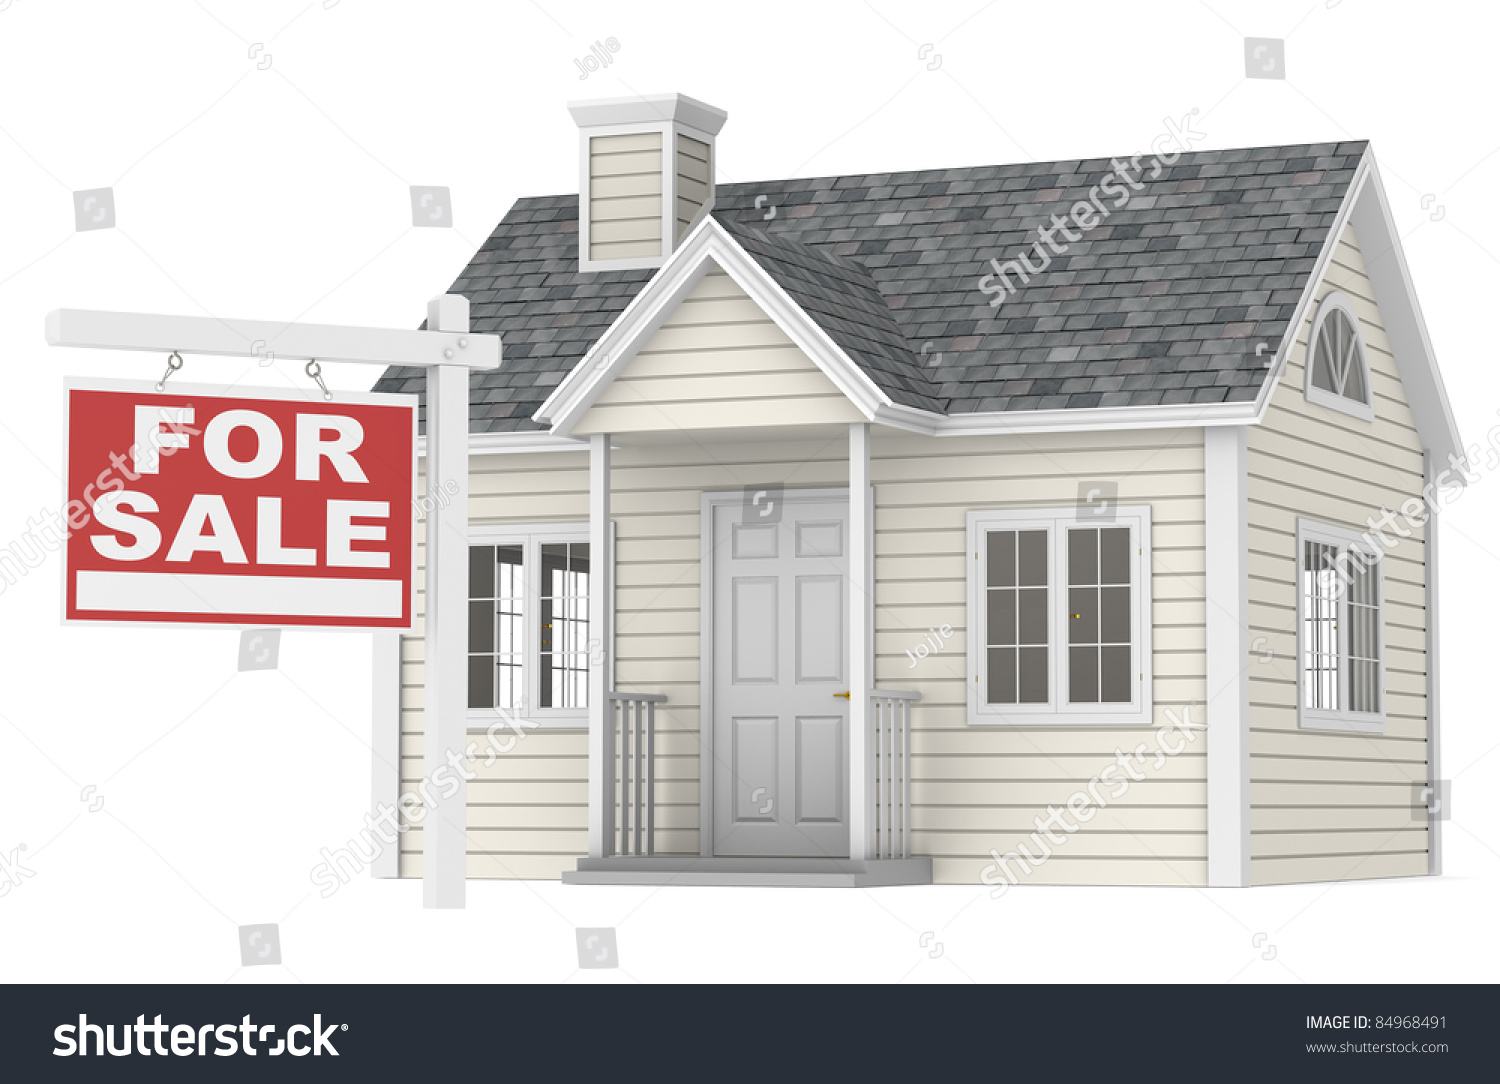 house for sale a simple house with a for sale sign stock photo 84968491 shutterstock. Black Bedroom Furniture Sets. Home Design Ideas